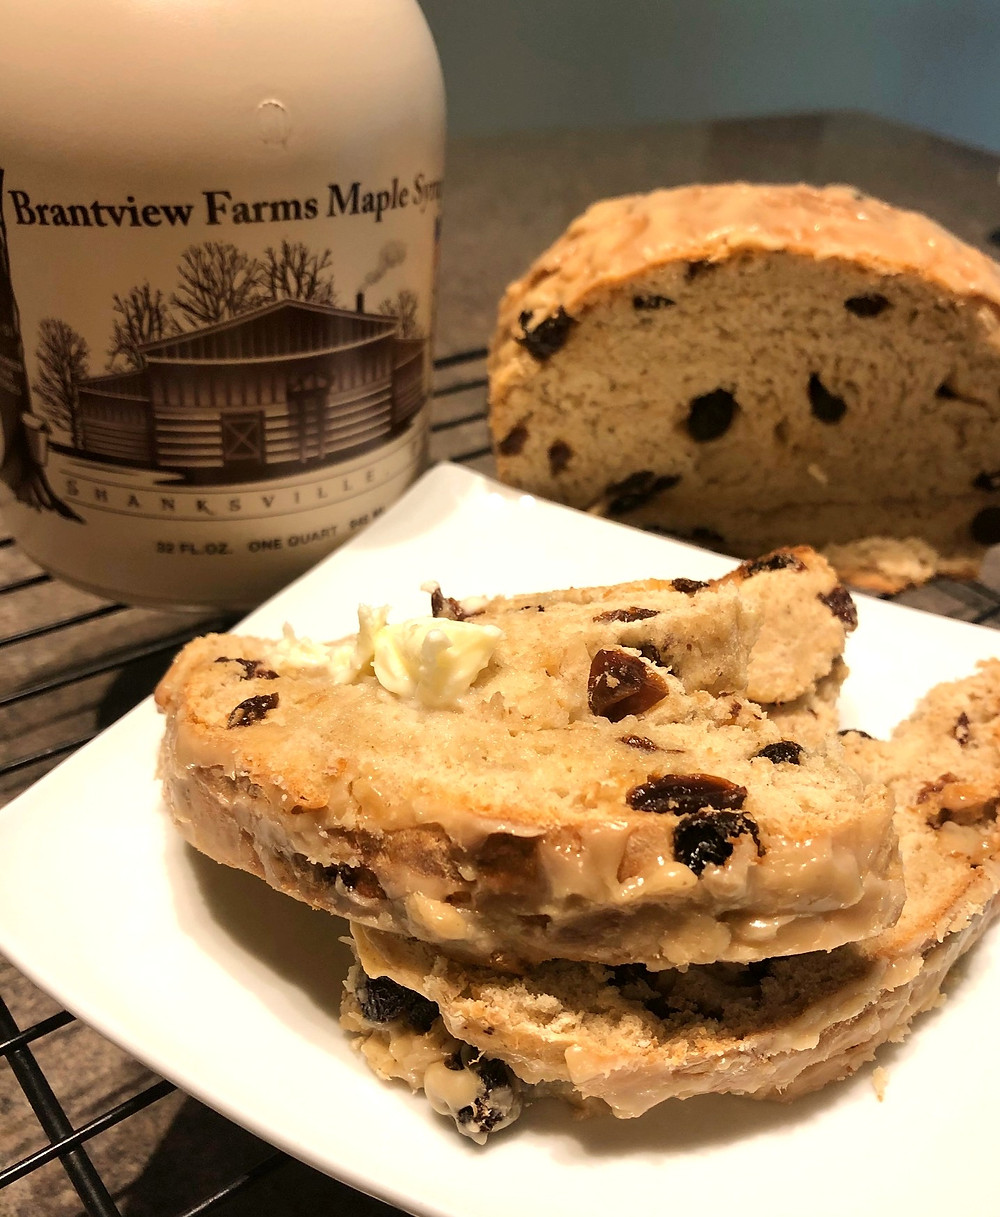 Two slices of bread with raisins sit on a white plate next to a half of a loaf of the same bread. Beside the plate is a brown jug that reads Brantview Farms Maple Syrup